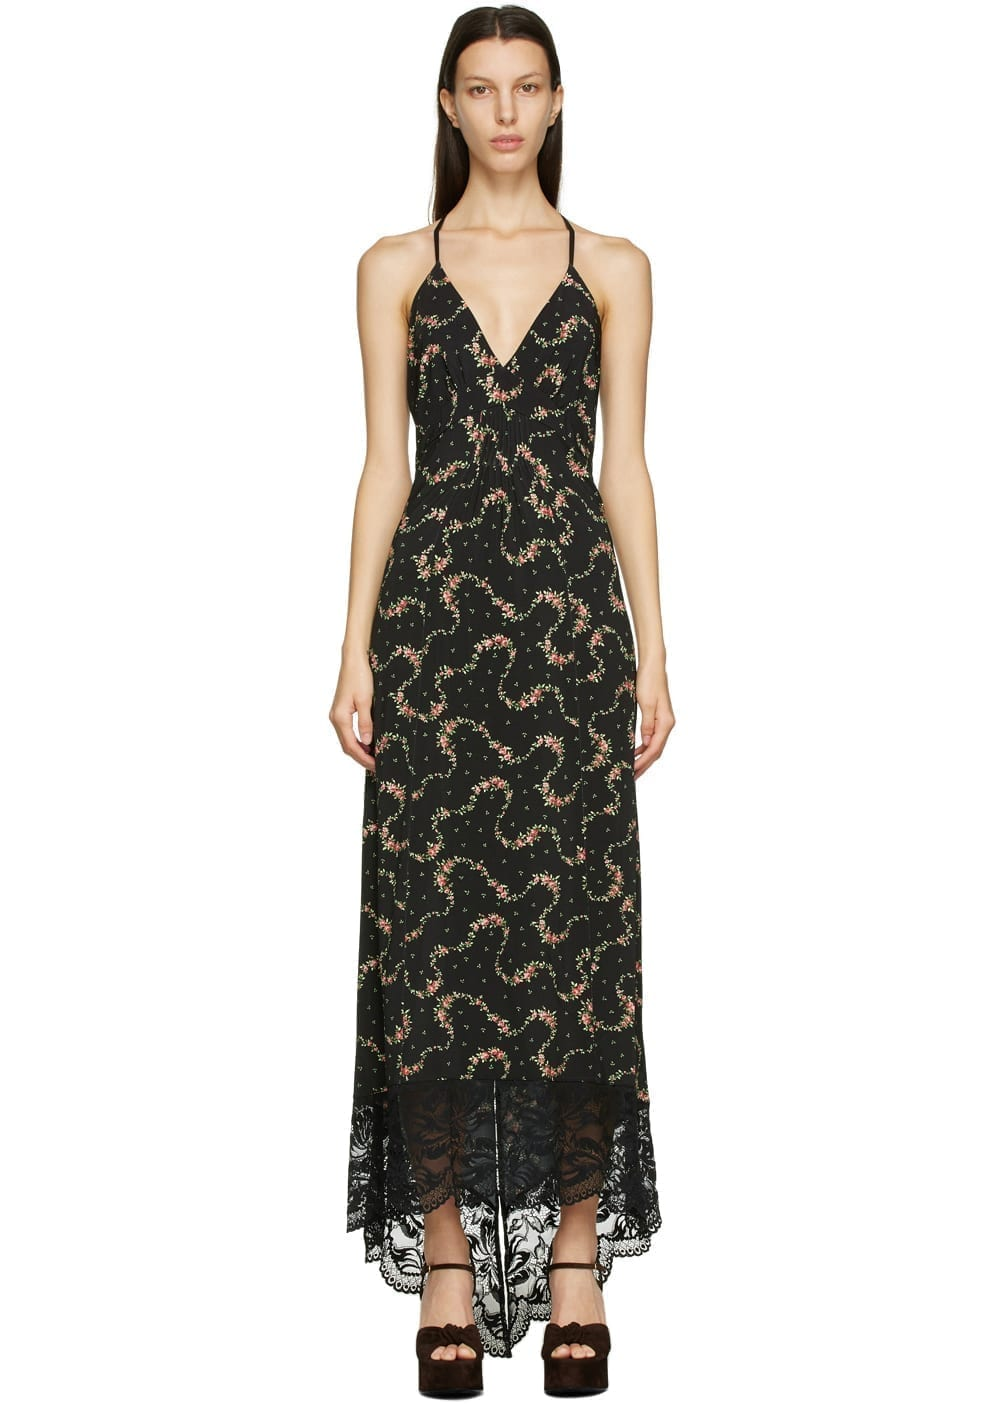 PACO RABANNE Black Floral Halter Dress